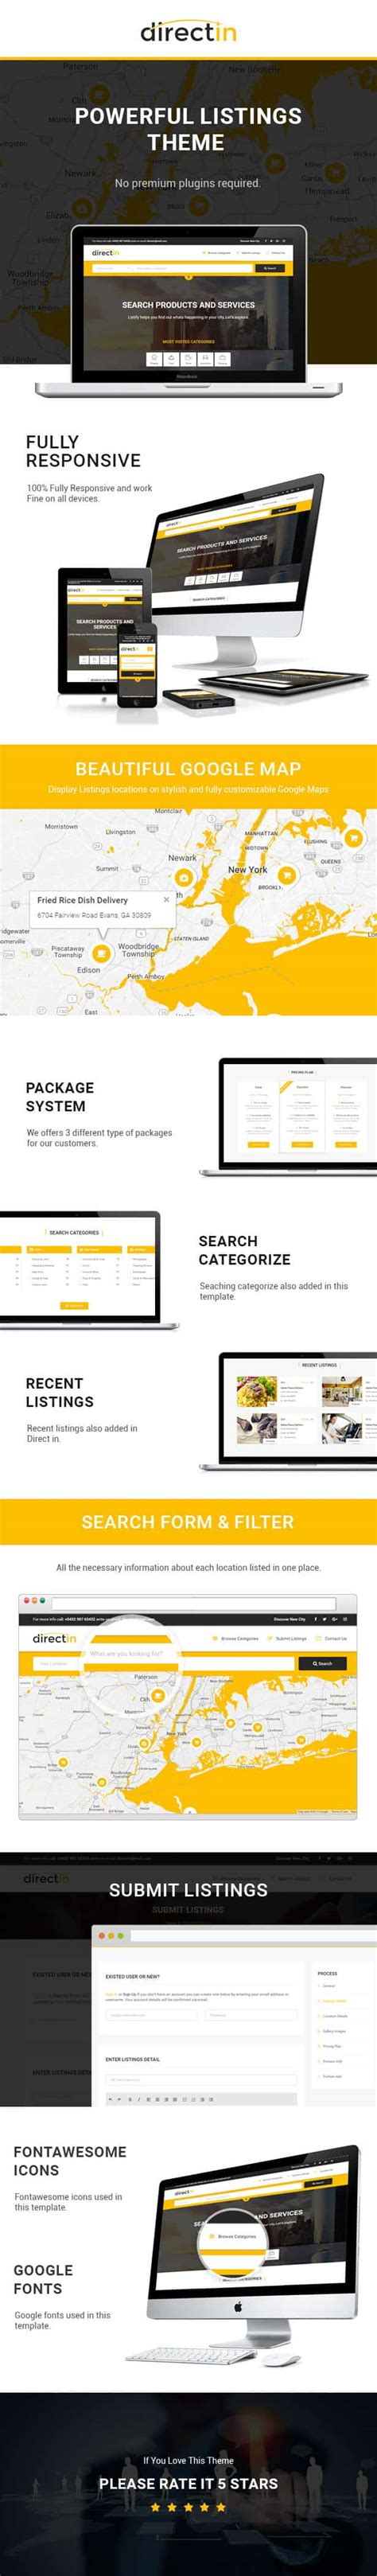 Directin Classified Ads Listing Html Template For Directory Realty Property And Yellow Pages Yellow Pages Website Template Free